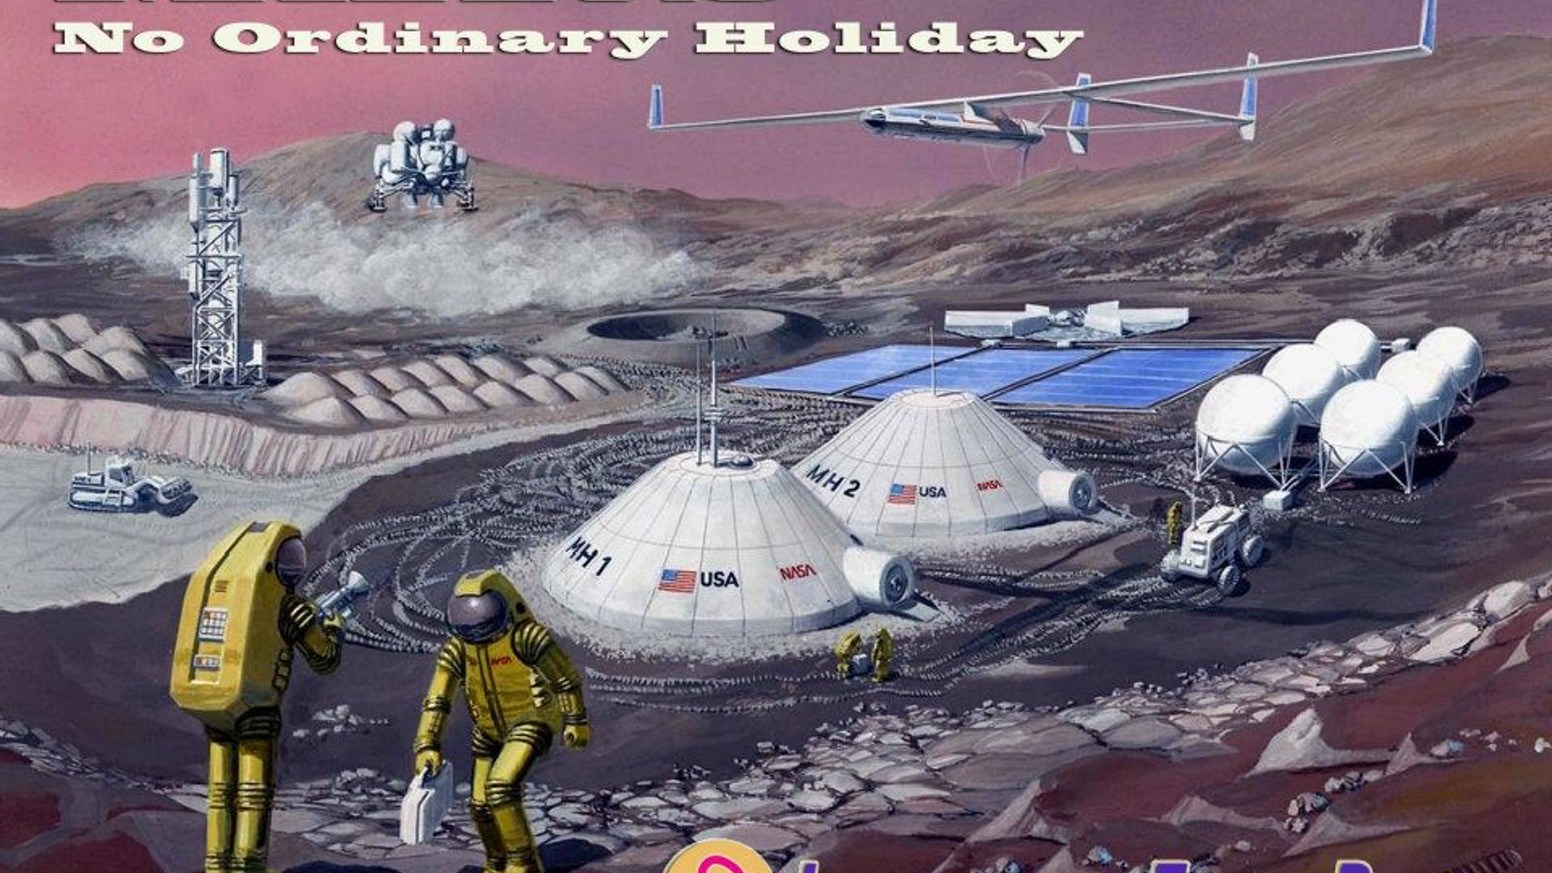 Exploration of the Planet Mars missions videos images and information